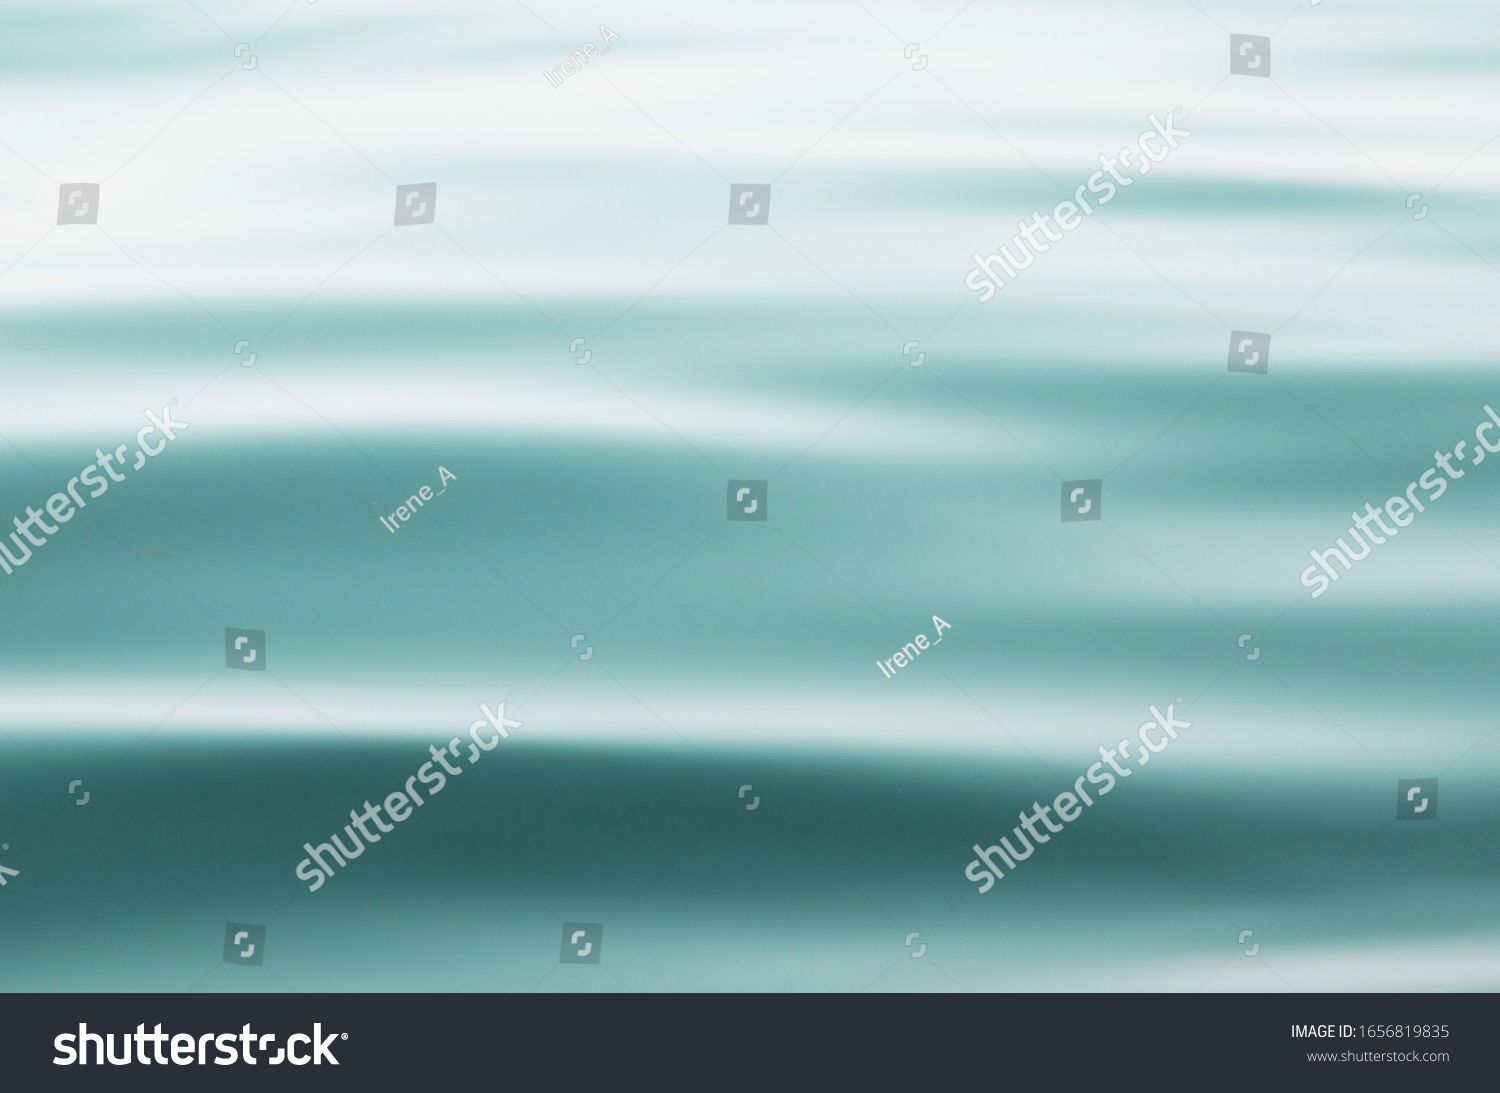 Ocean water background. Nature background concept. - Image #1656819835